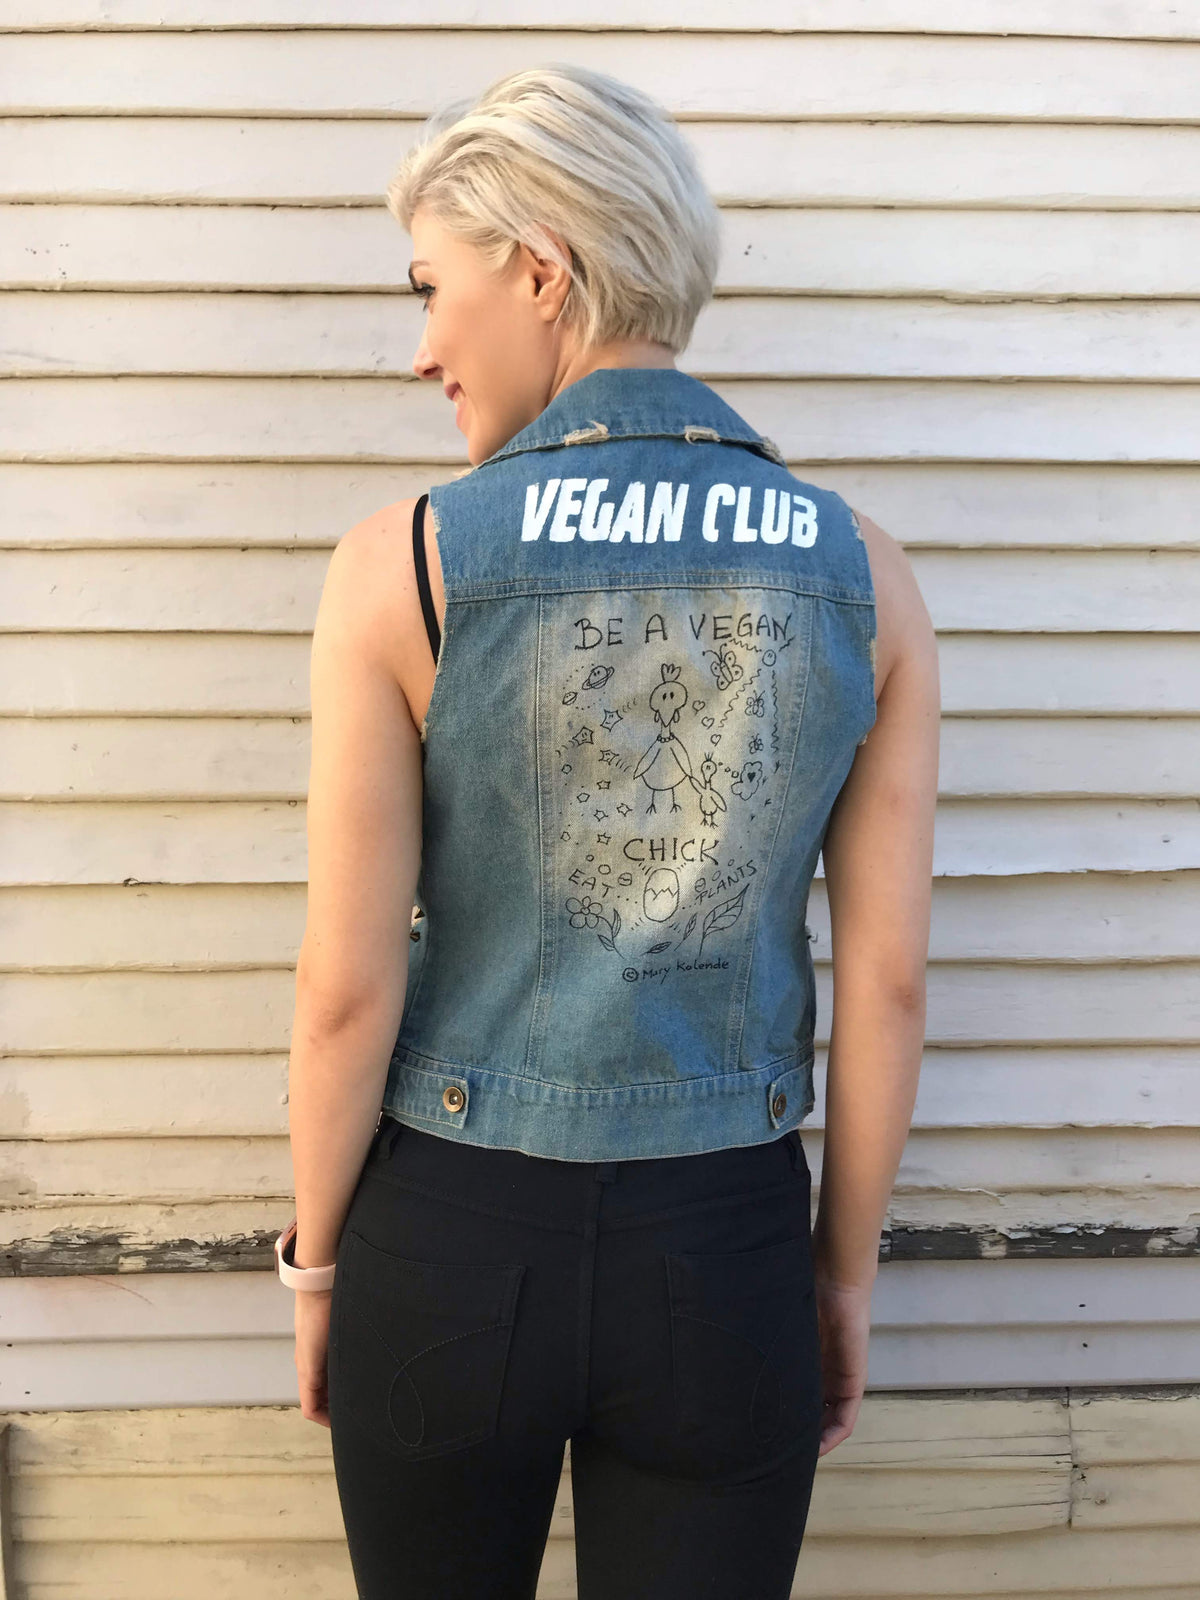 "One of a Kind Upcycled Jean Jacket ""Be a Vegan Chick"" with Vegan Club featuring cute animal doodles by Mary Kolende"